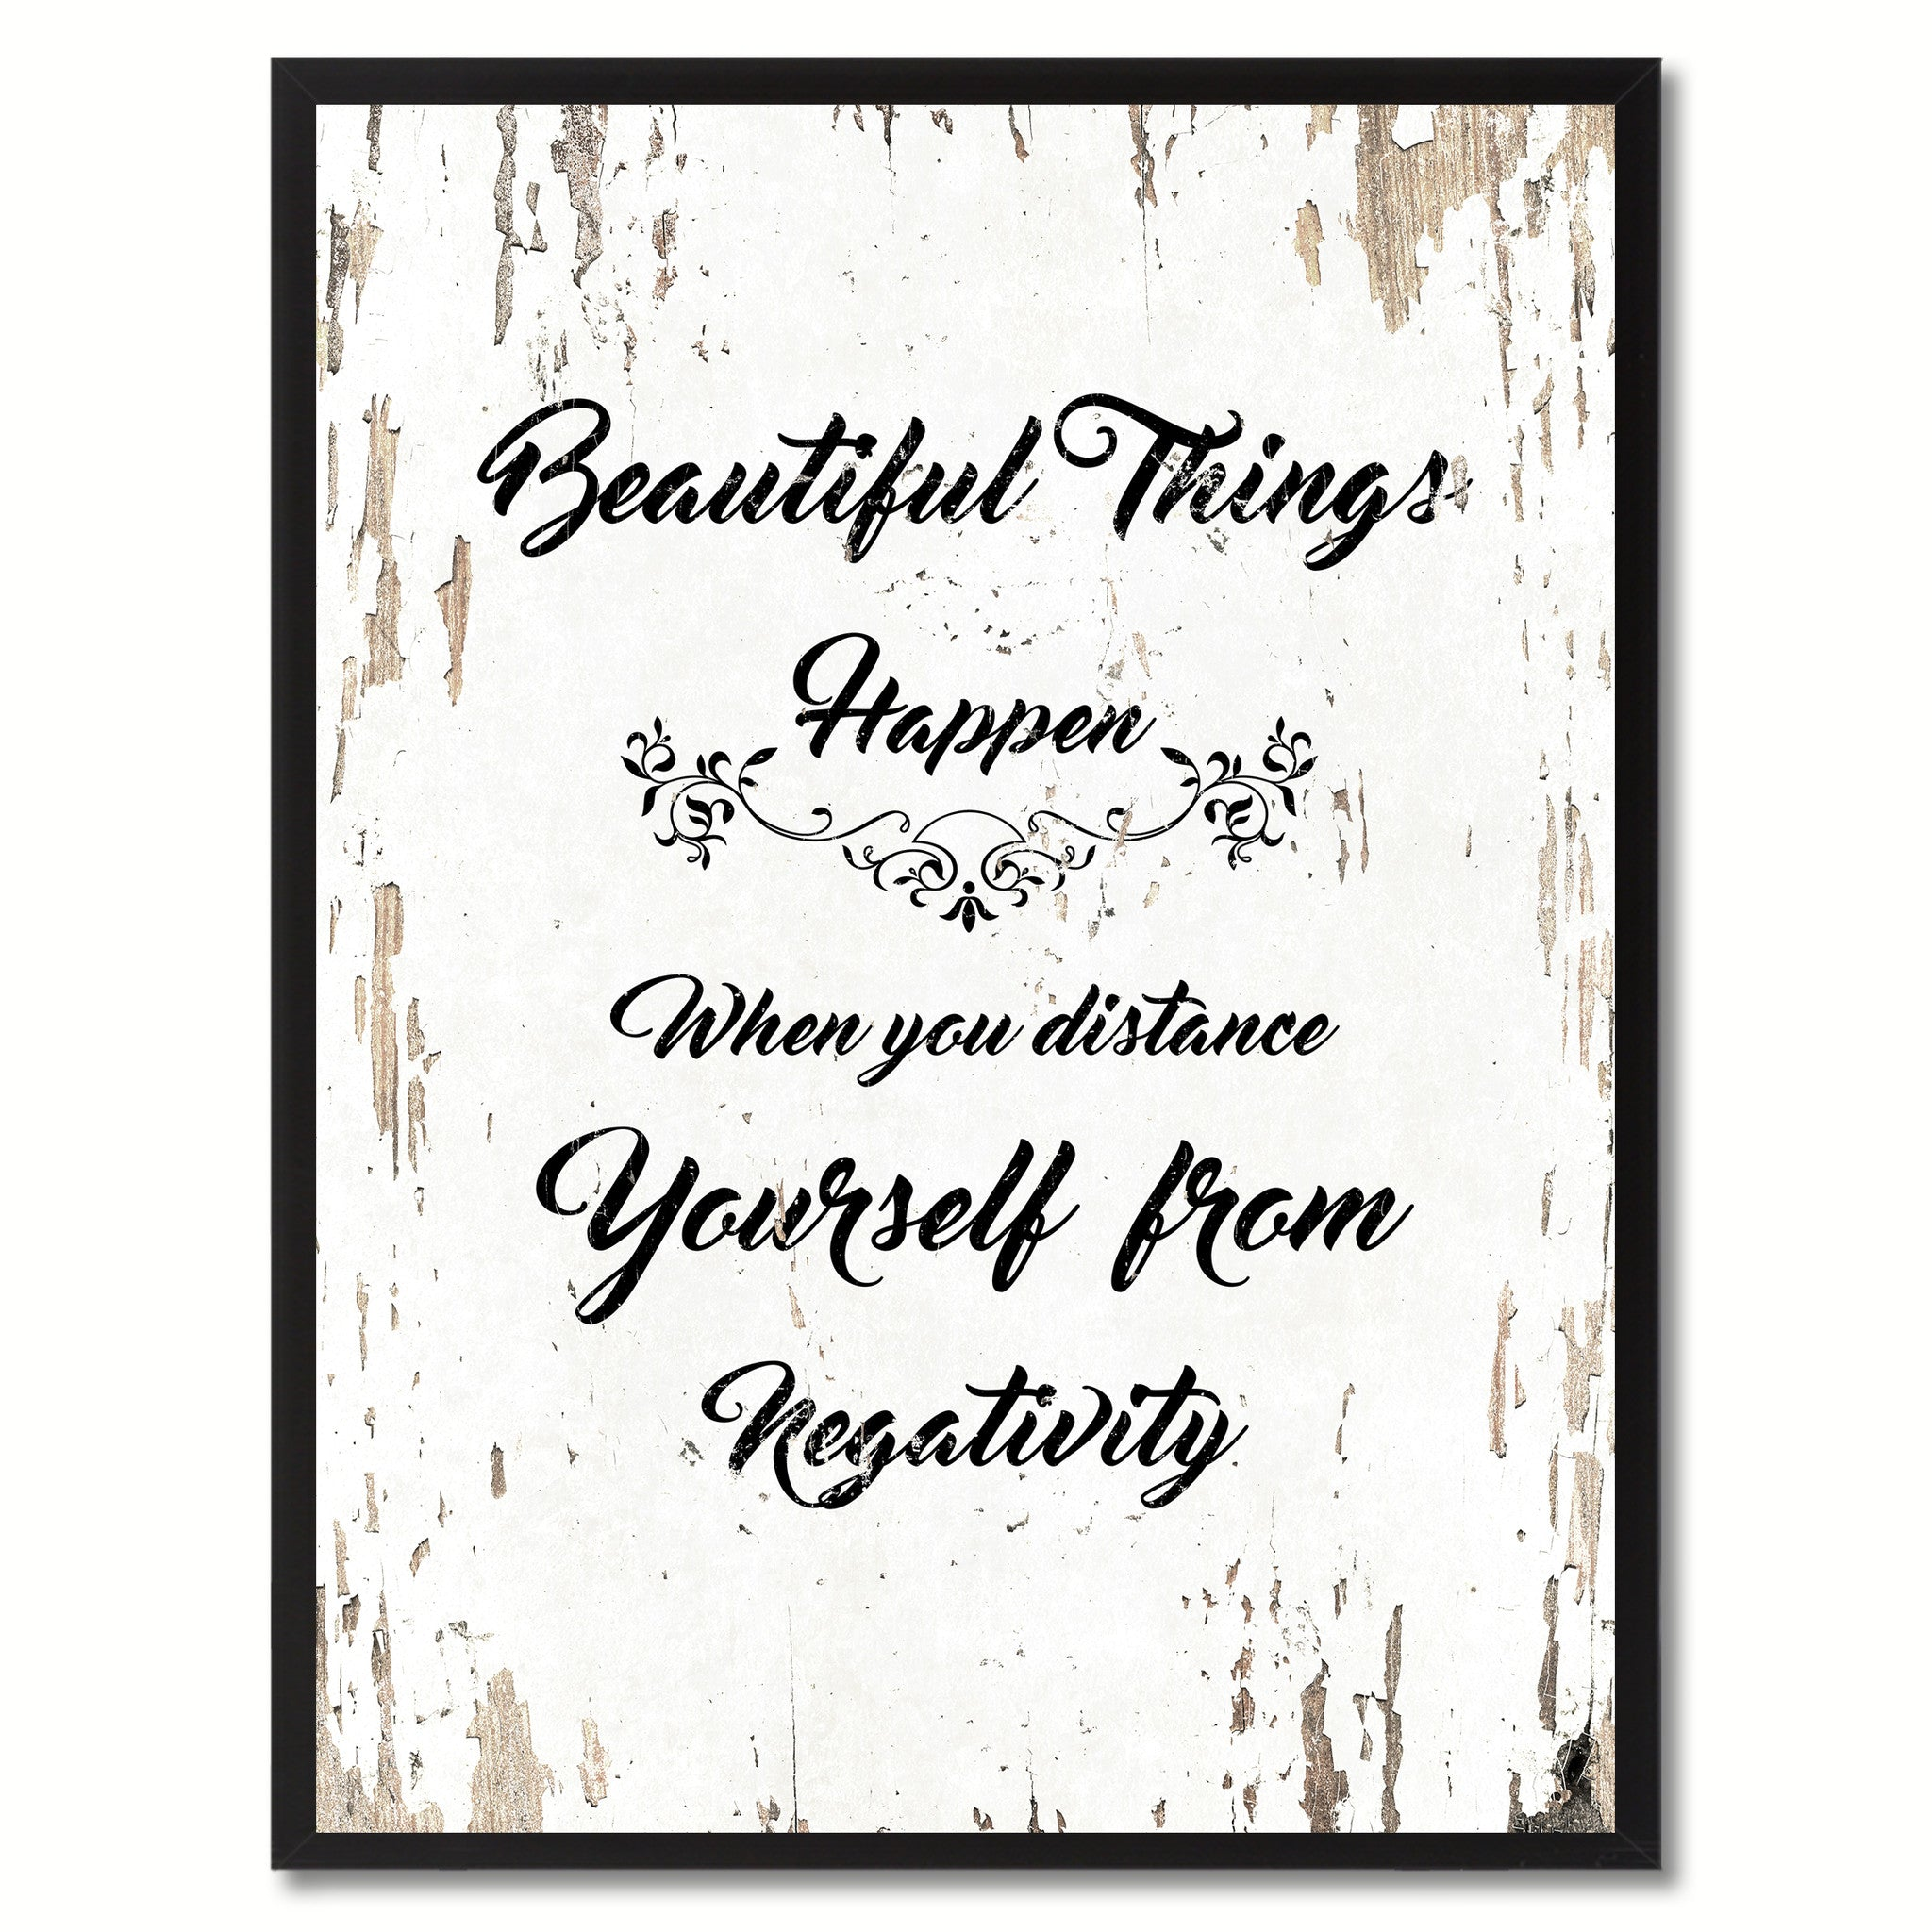 Beautiful things happen when you distance yourself from negativity Motivation Quote Saying Gift Ideas Home Decor Wall Art